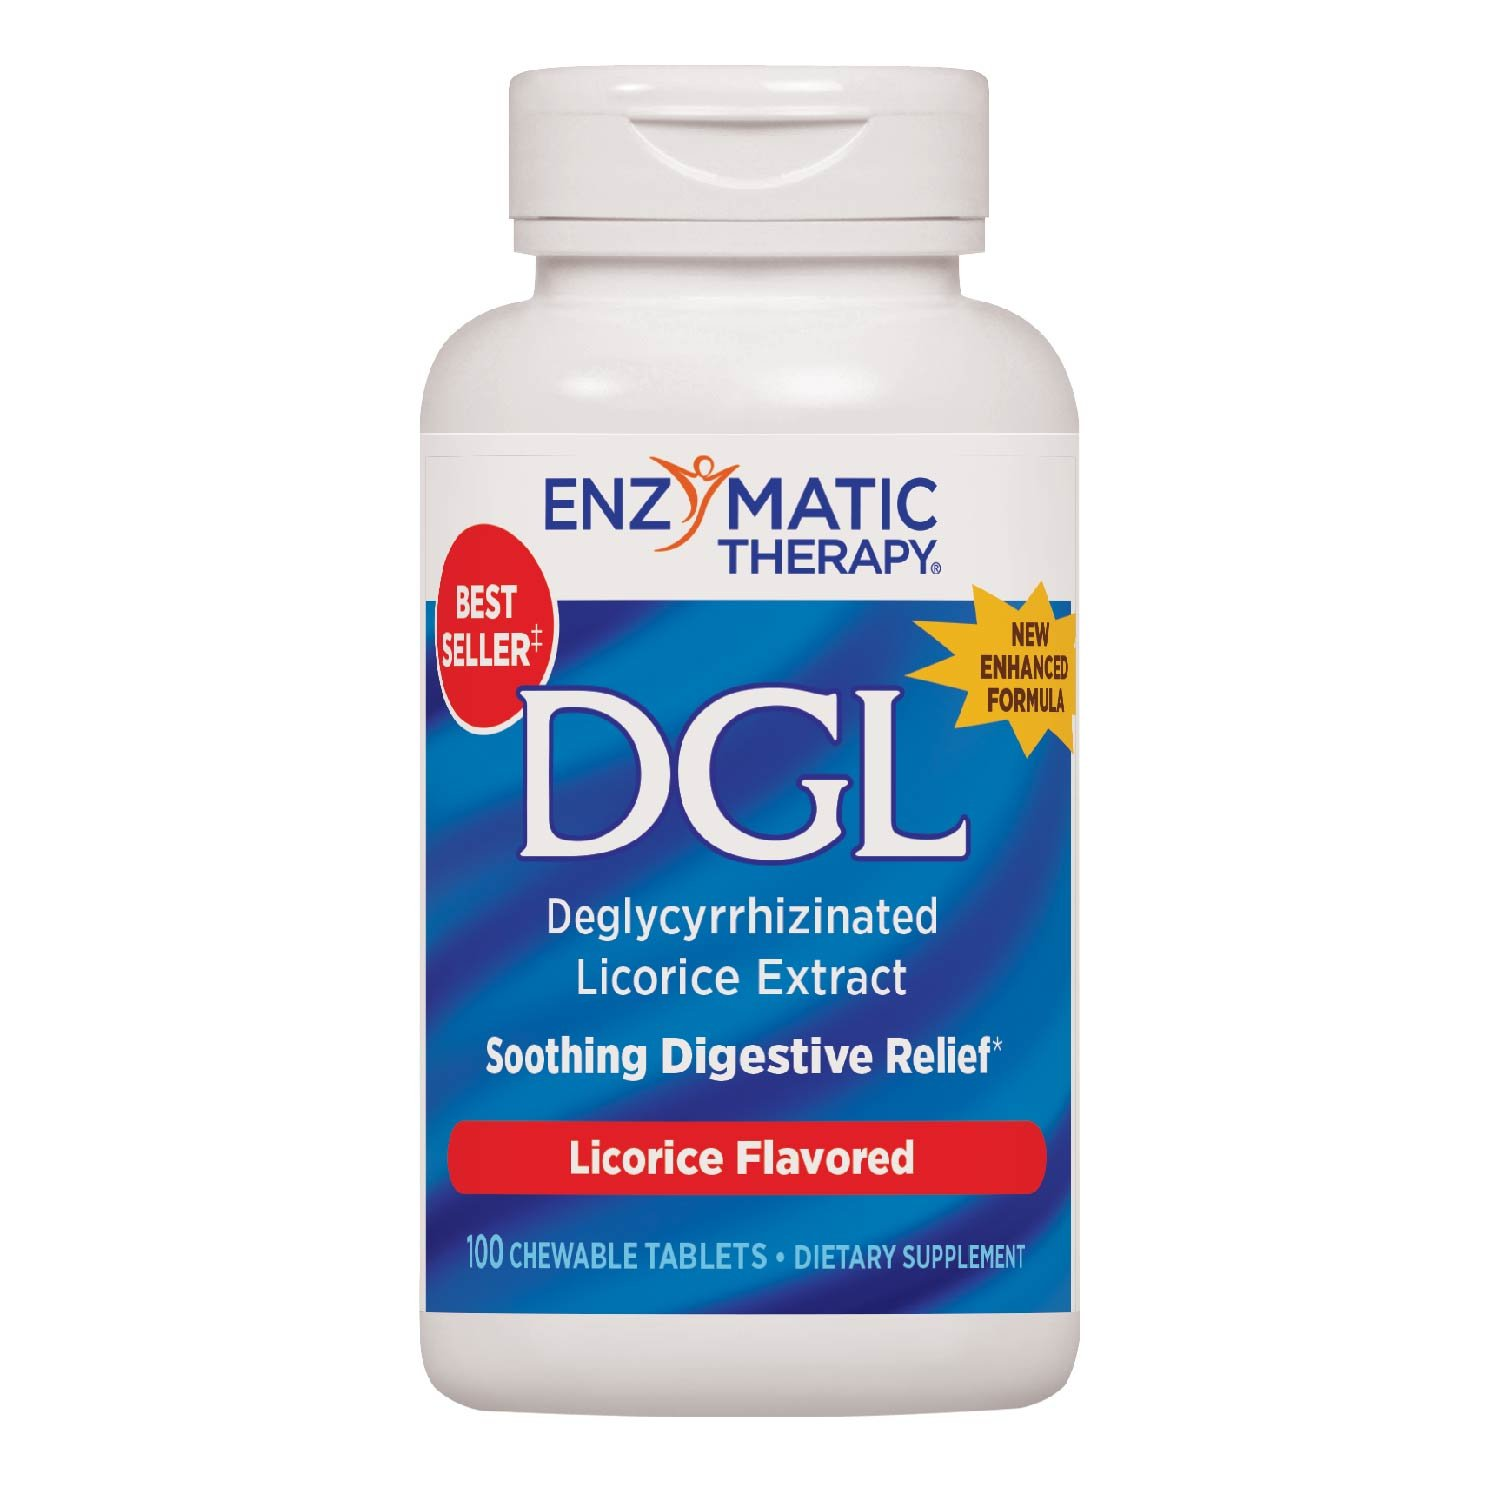 Enzymatic Therapy DGL, Licorice Flavor, 100 Chewable Tablets. Pack of 1 Bottle